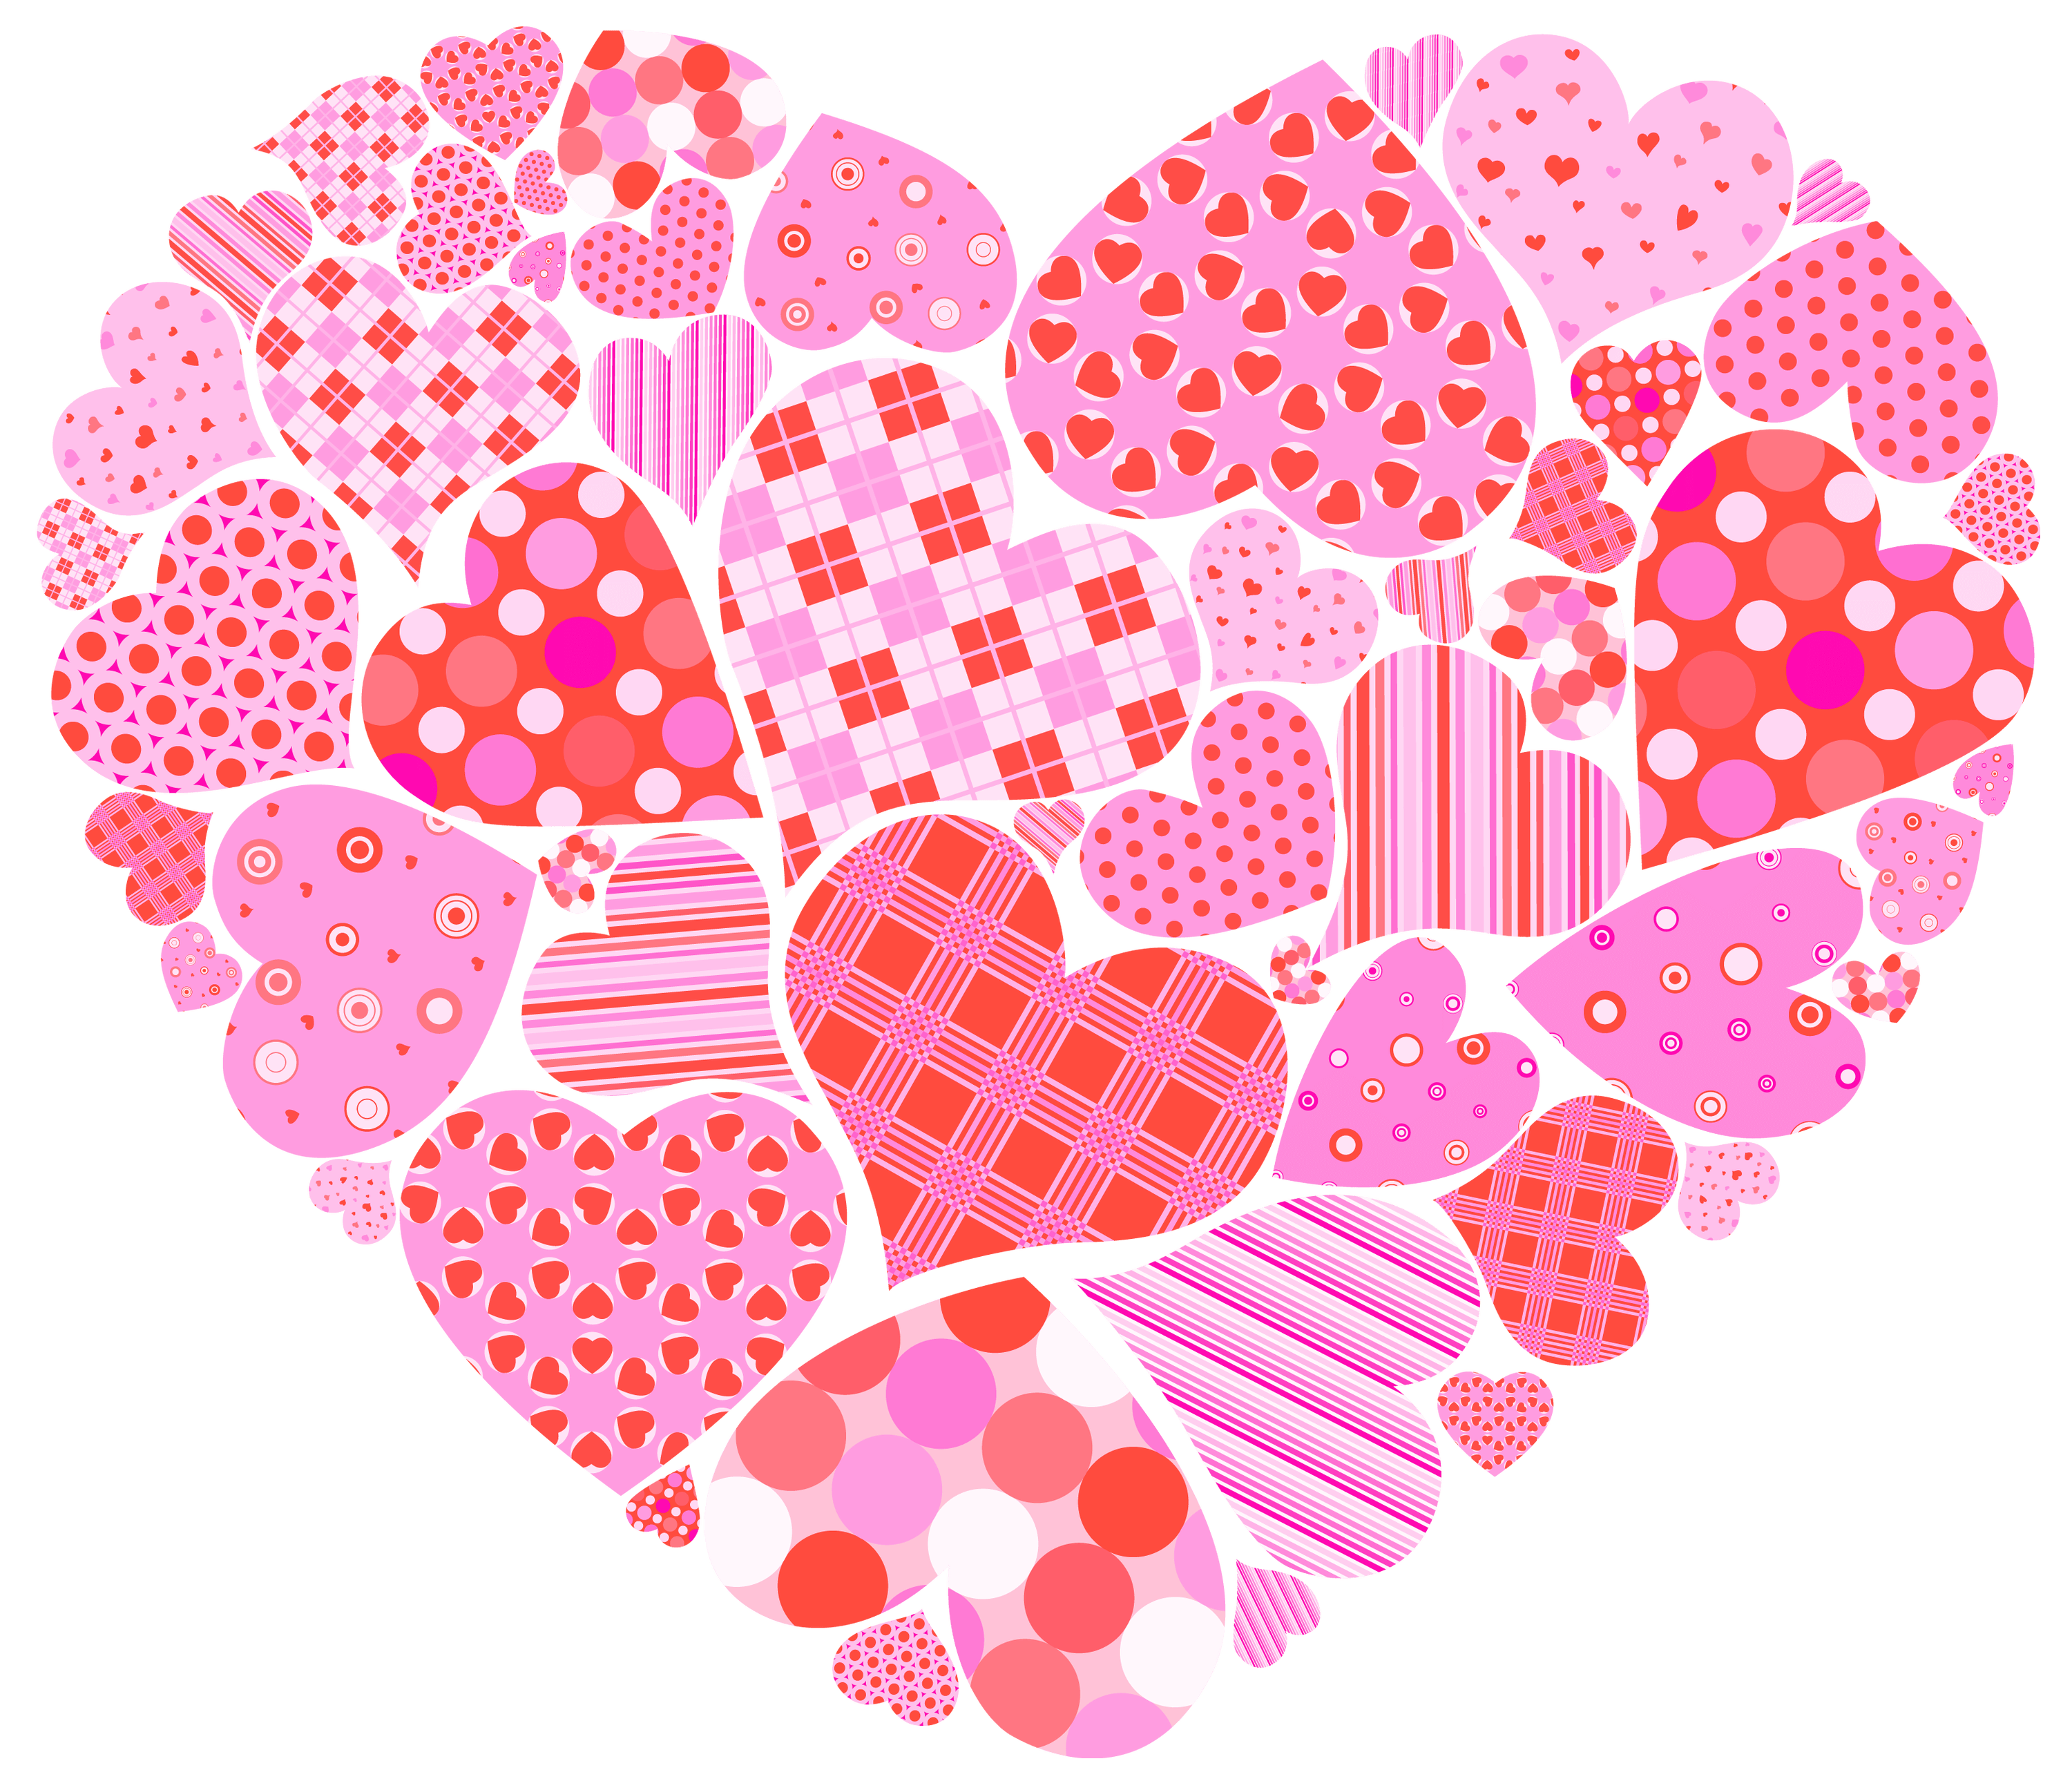 Valentines day clipart transparent hearts png freeuse stock Valentines Day Heart Frame transparent PNG - StickPNG png freeuse stock